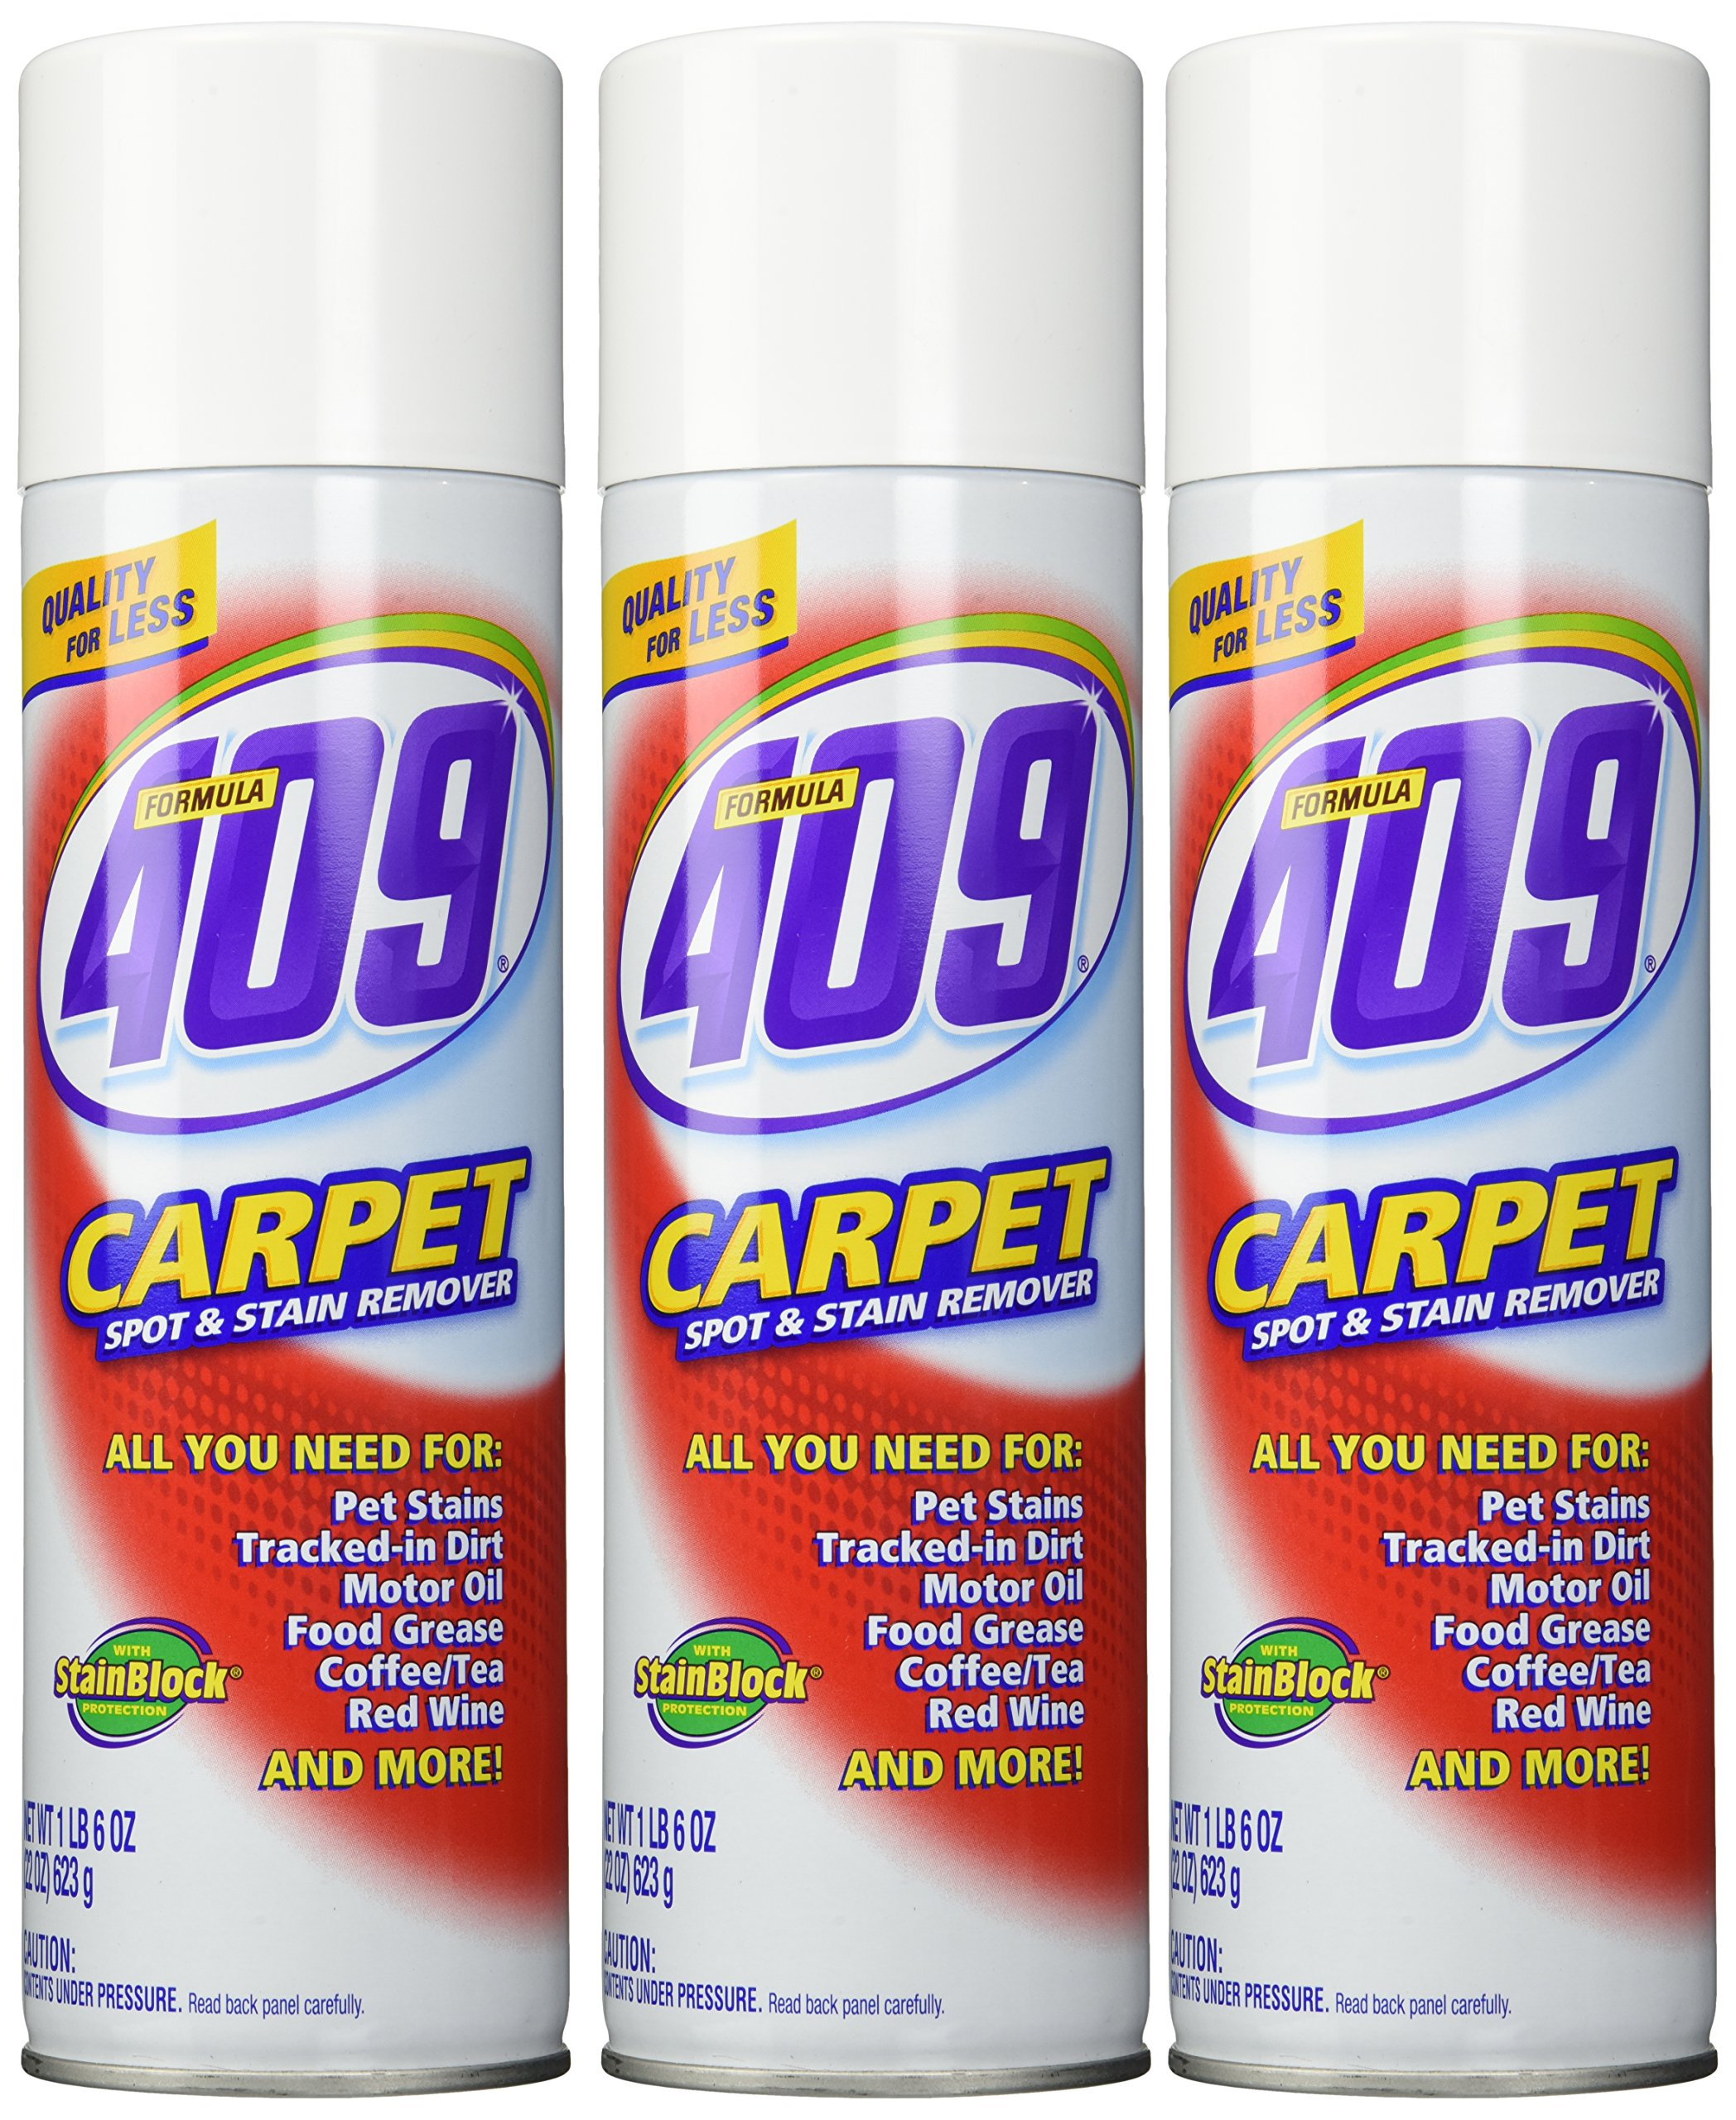 Formula 409 Carpet Spot & Stain Remover 22 oz Can (Pack of 3)